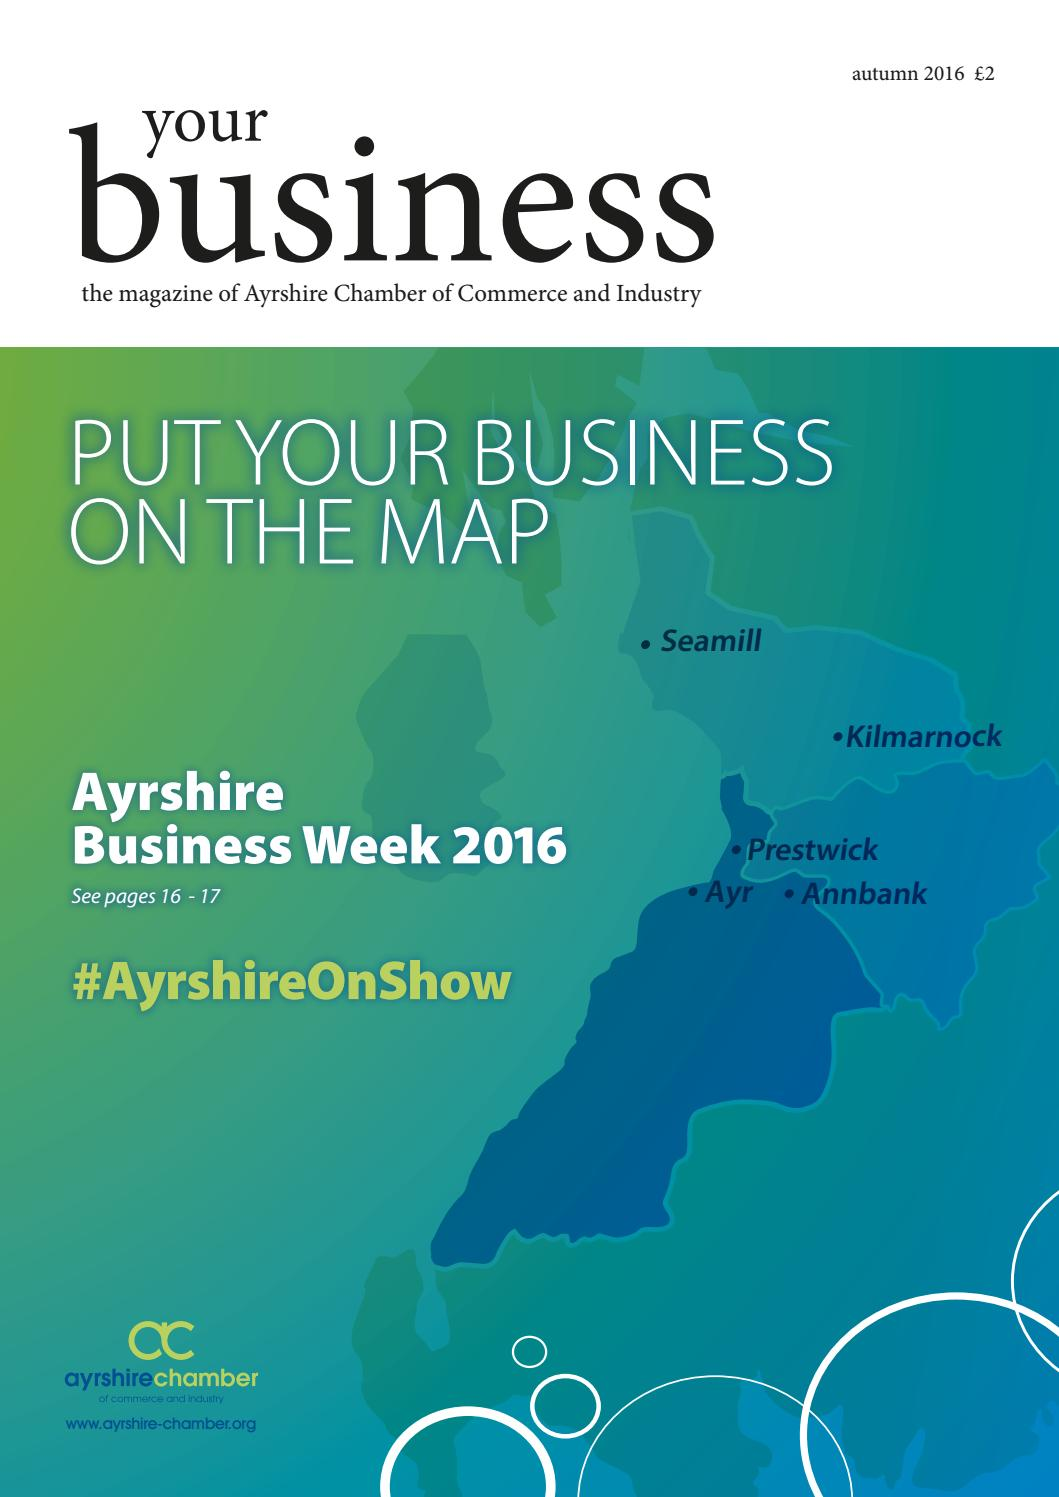 Ayrshire Chamber of Commerce Your Business Autumn 2016 by Ayrshire ...